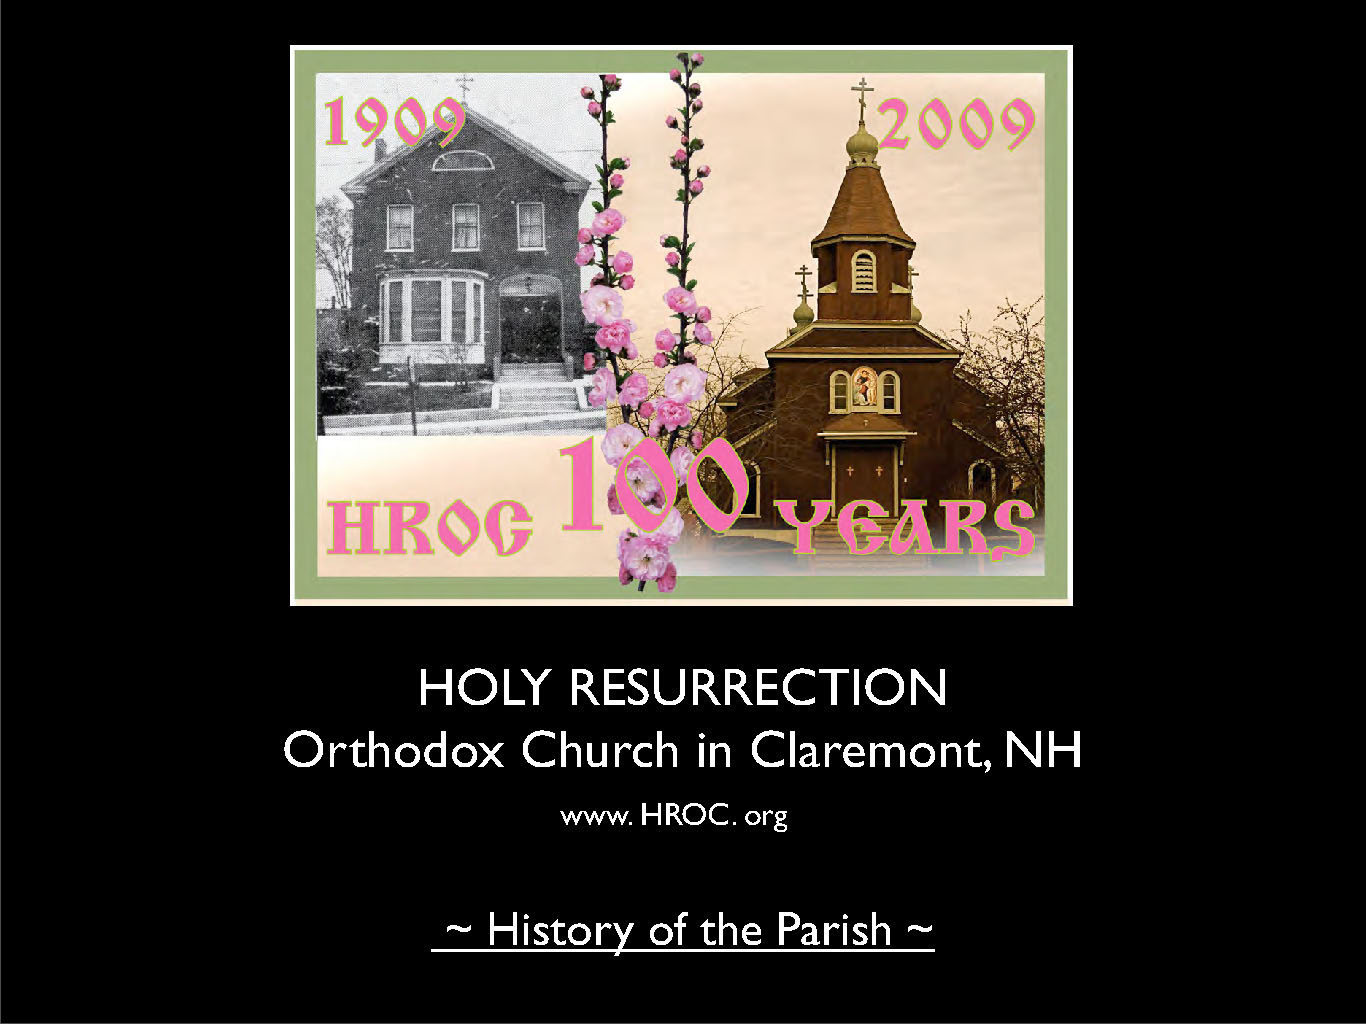 HROC-100-History-of-the-Parish1_Page_001